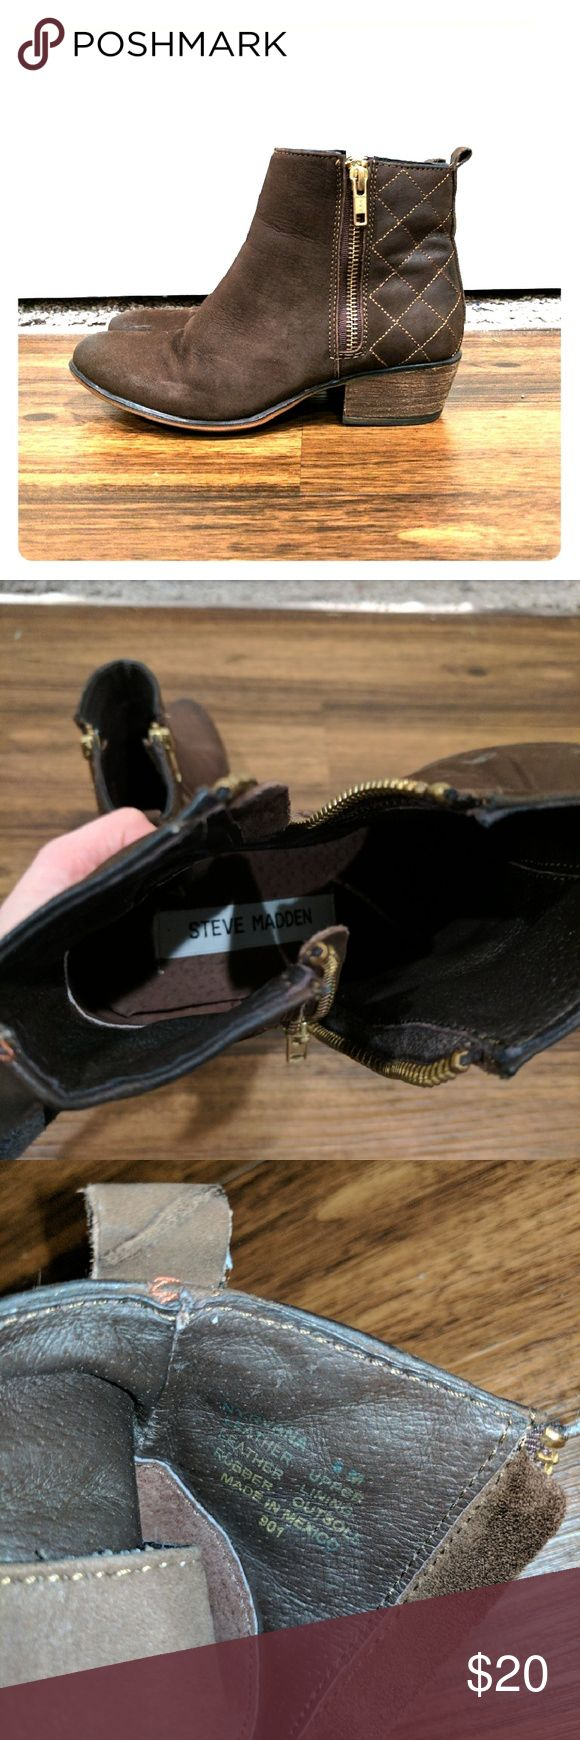 Brown Steve Madden Ankle Boots Size 6 This size 6 brown Steve Maddens have been worn only and have a few scuff marks but nothing major! Steve Madden Shoes Ankle Boots & Booties